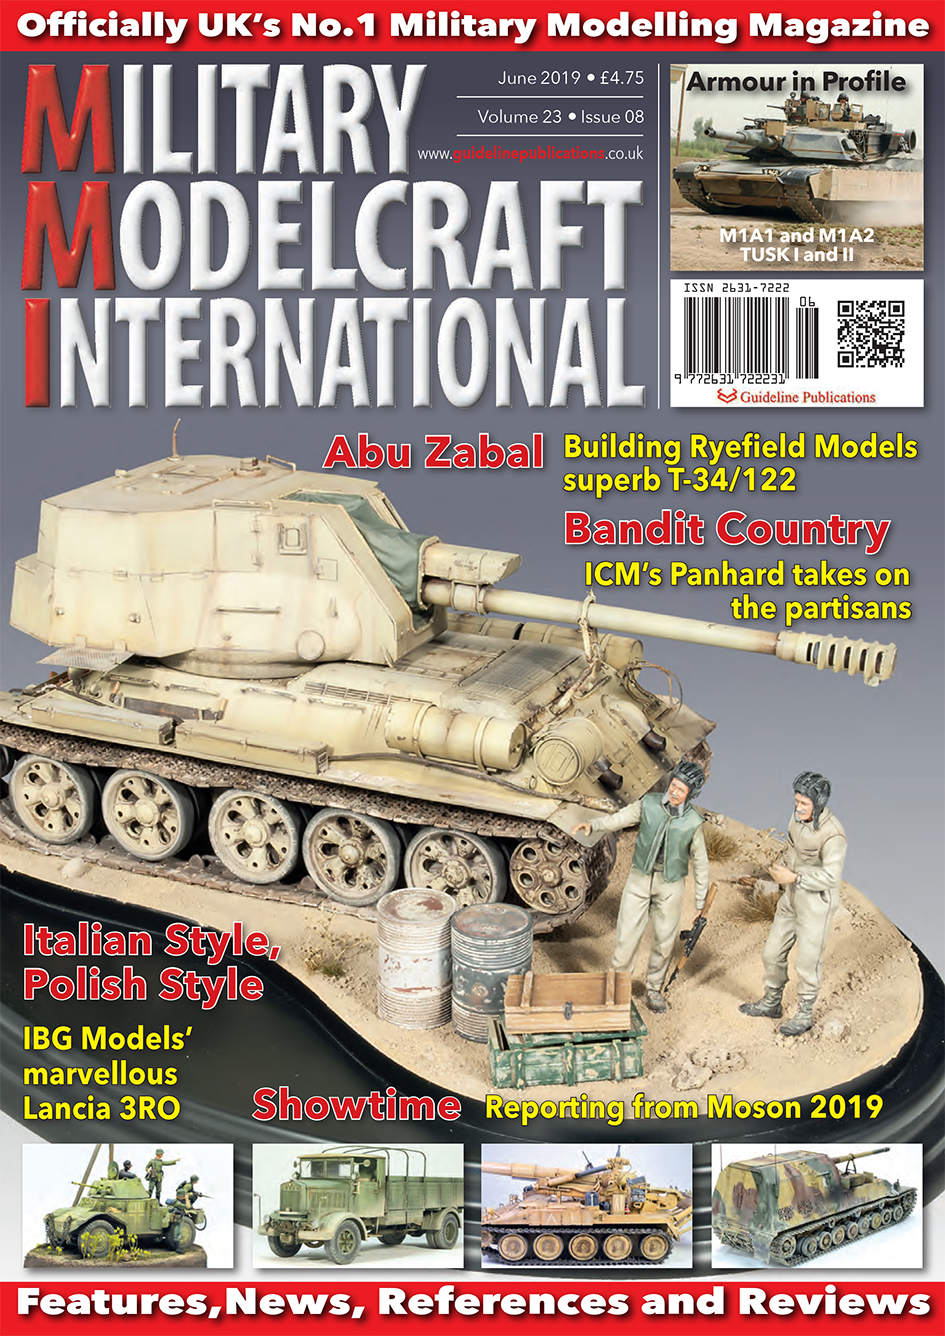 Guideline Publications Military Modelcraft Int June 2019 vol 23-08 - June  2019